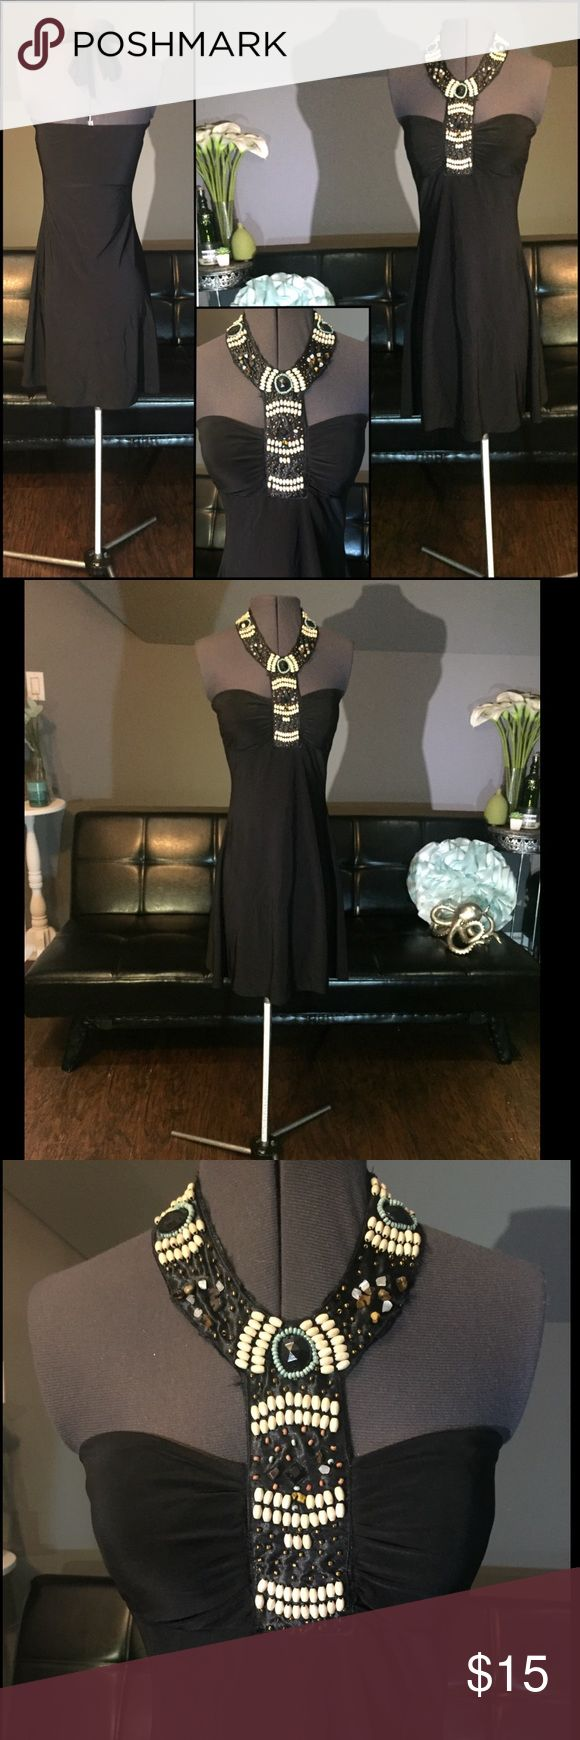 Black Fitted Stretch Tribal Beaded Chocker Dress Small  Great Condition  Material has stretch  Quality thicker material.  Bust Lining  Skirt has a slight flair towards bottom  Not thin or see through  Ties around neck to adjust fitting  Comfortable and easy to move in. Dresses Mini